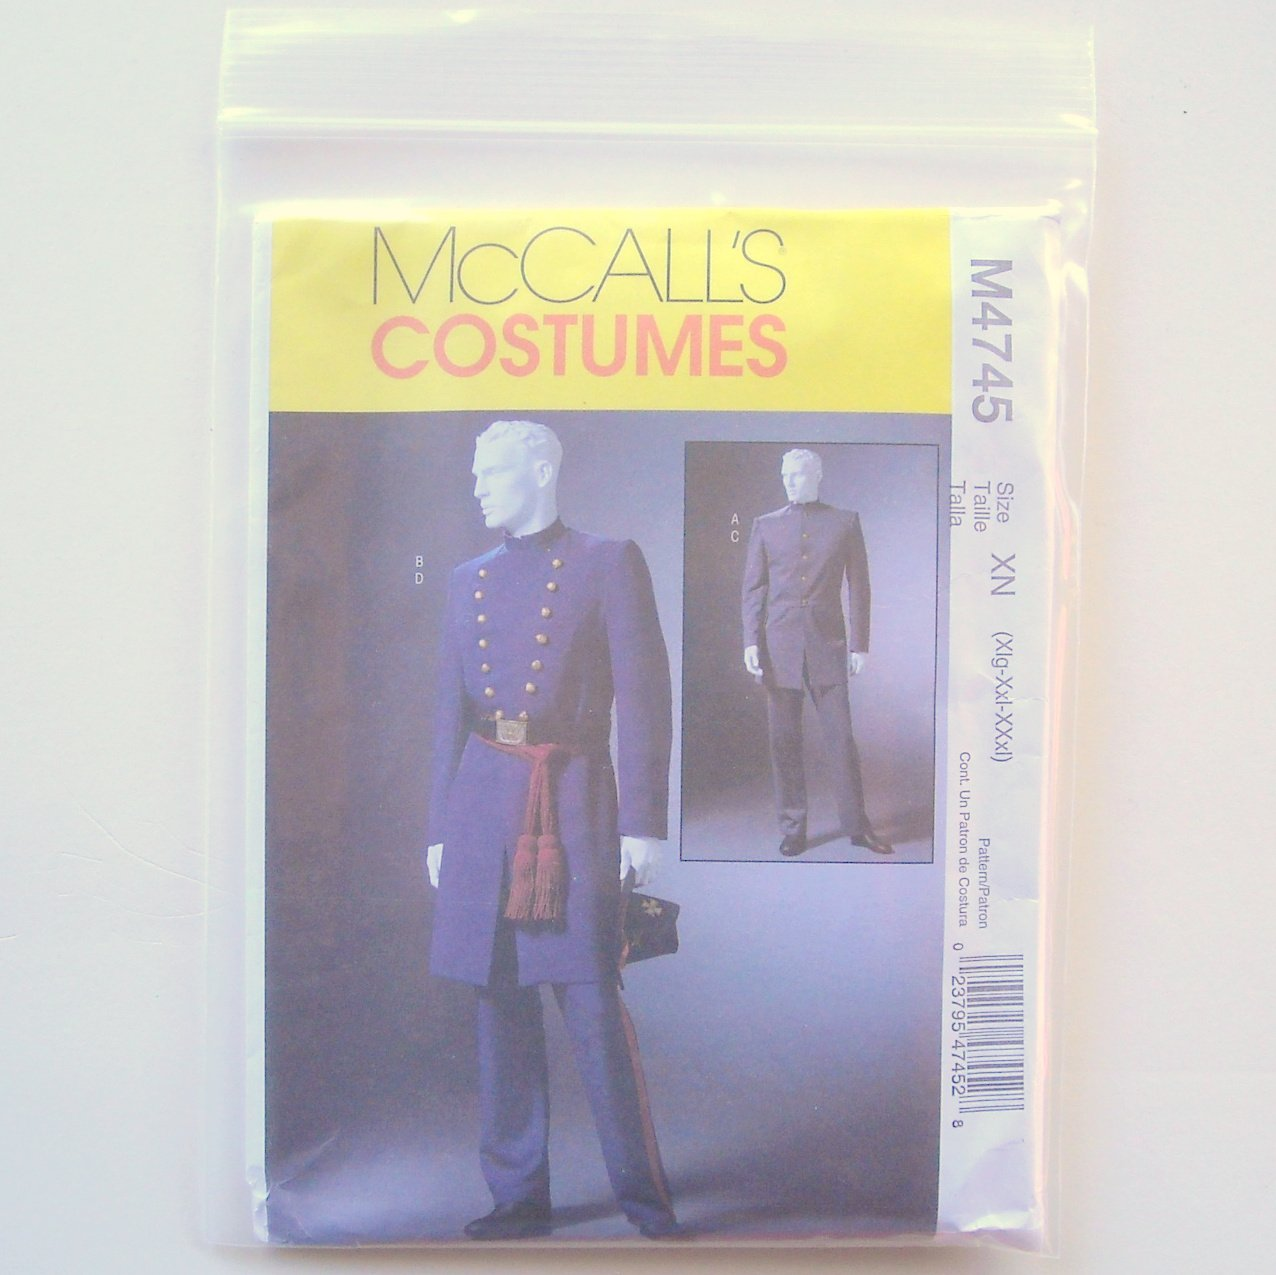 Mens Civil War Costumes Size XN Xlg Xxl XXxl McCalls Costumes Sewing Pattern M4745